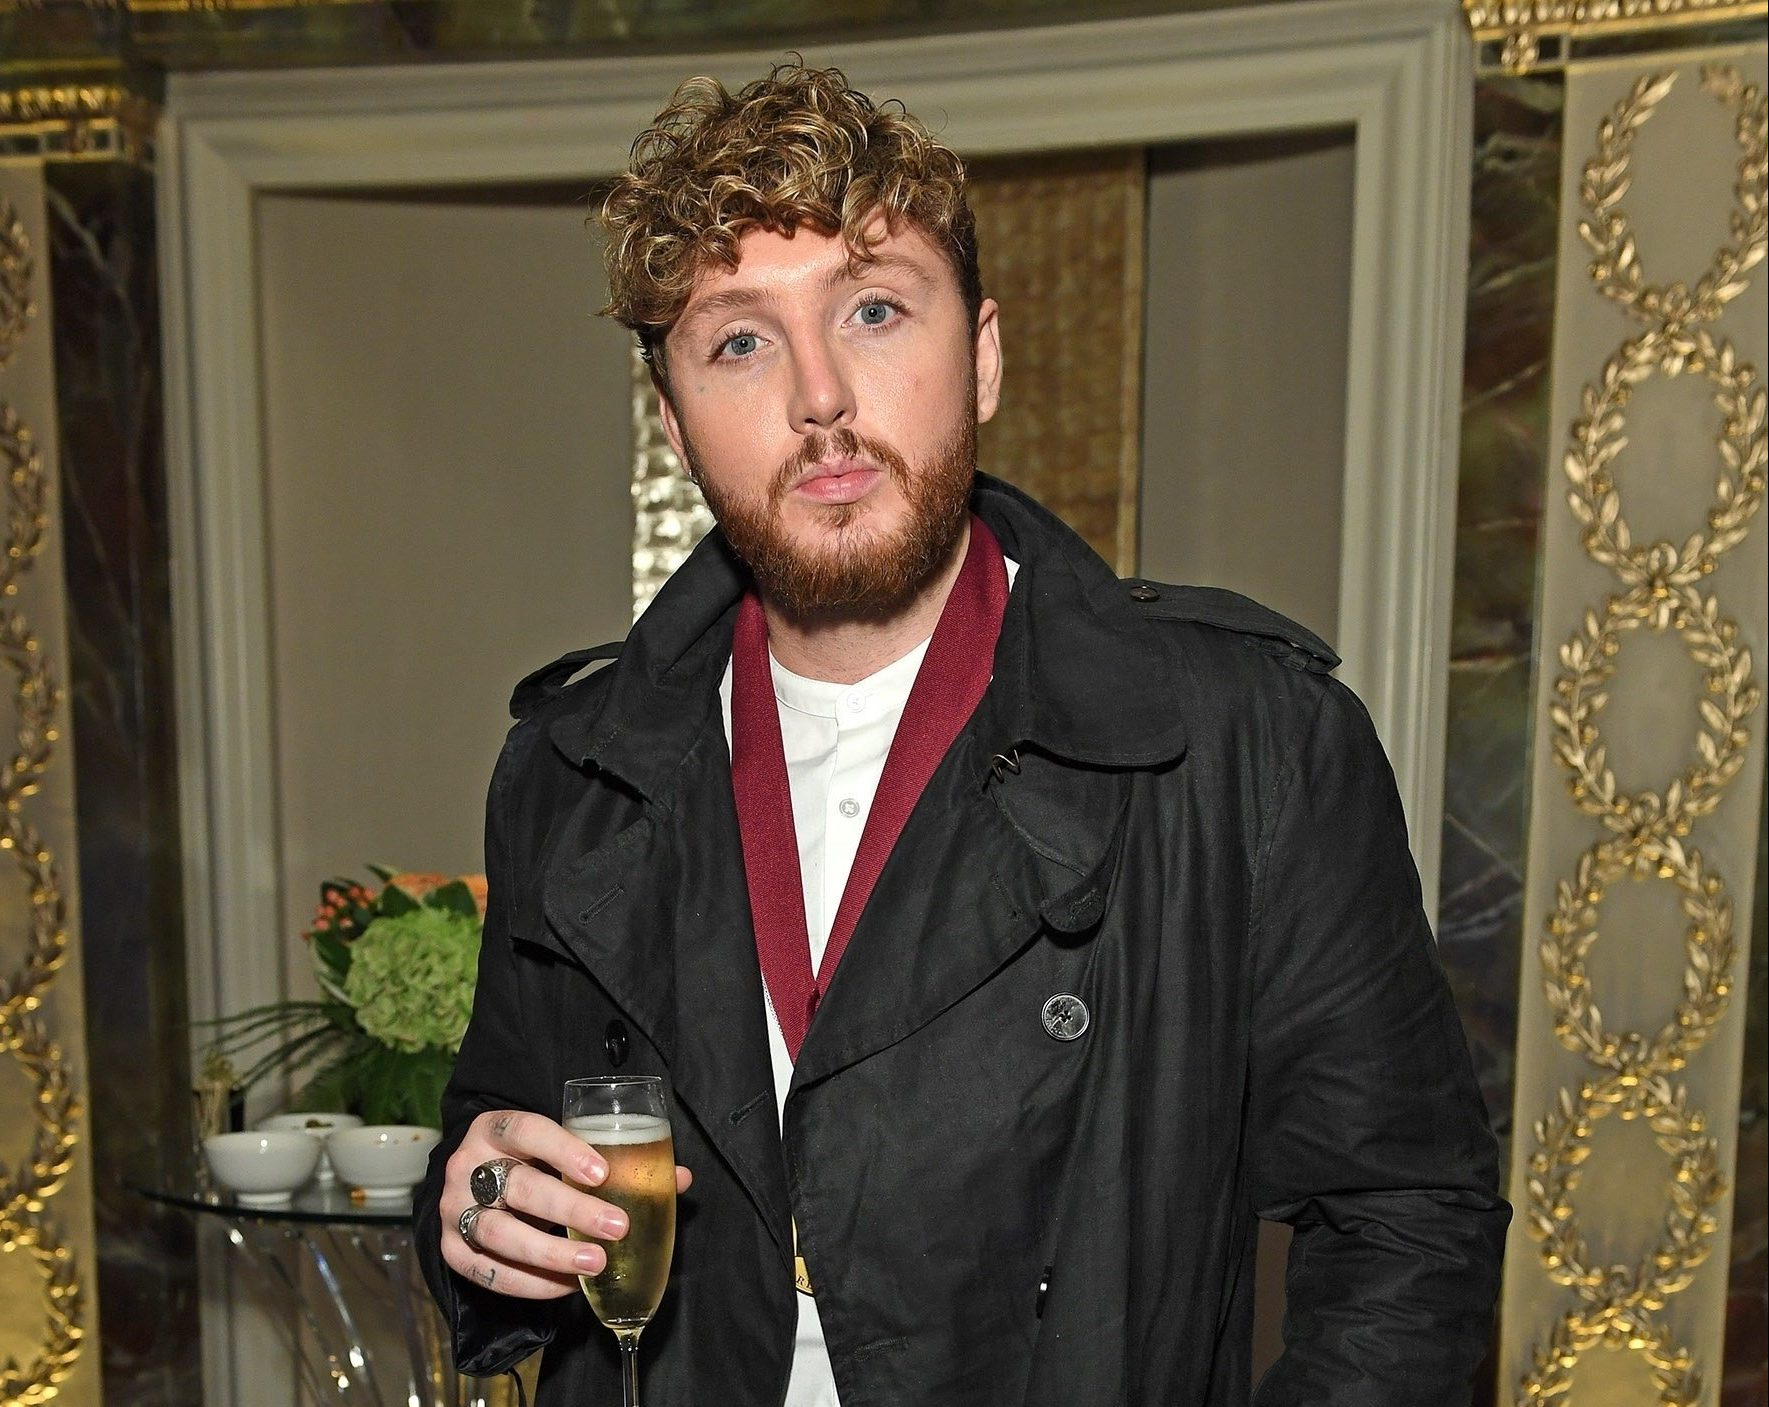 BGUK_1355890 - London, UNITED KINGDOM - Celebrities attend the BMI Awards 2018 at The Dorchester. Pictured: James Arthur BACKGRID UK 1 OCTOBER 2018 BYLINE MUST READ: TIMMSY / BACKGRID UK: +44 208 344 2007 / uksales@backgrid.com USA: +1 310 798 9111 / usasales@backgrid.com *UK Clients - Pictures Containing Children Please Pixelate Face Prior To Publication*